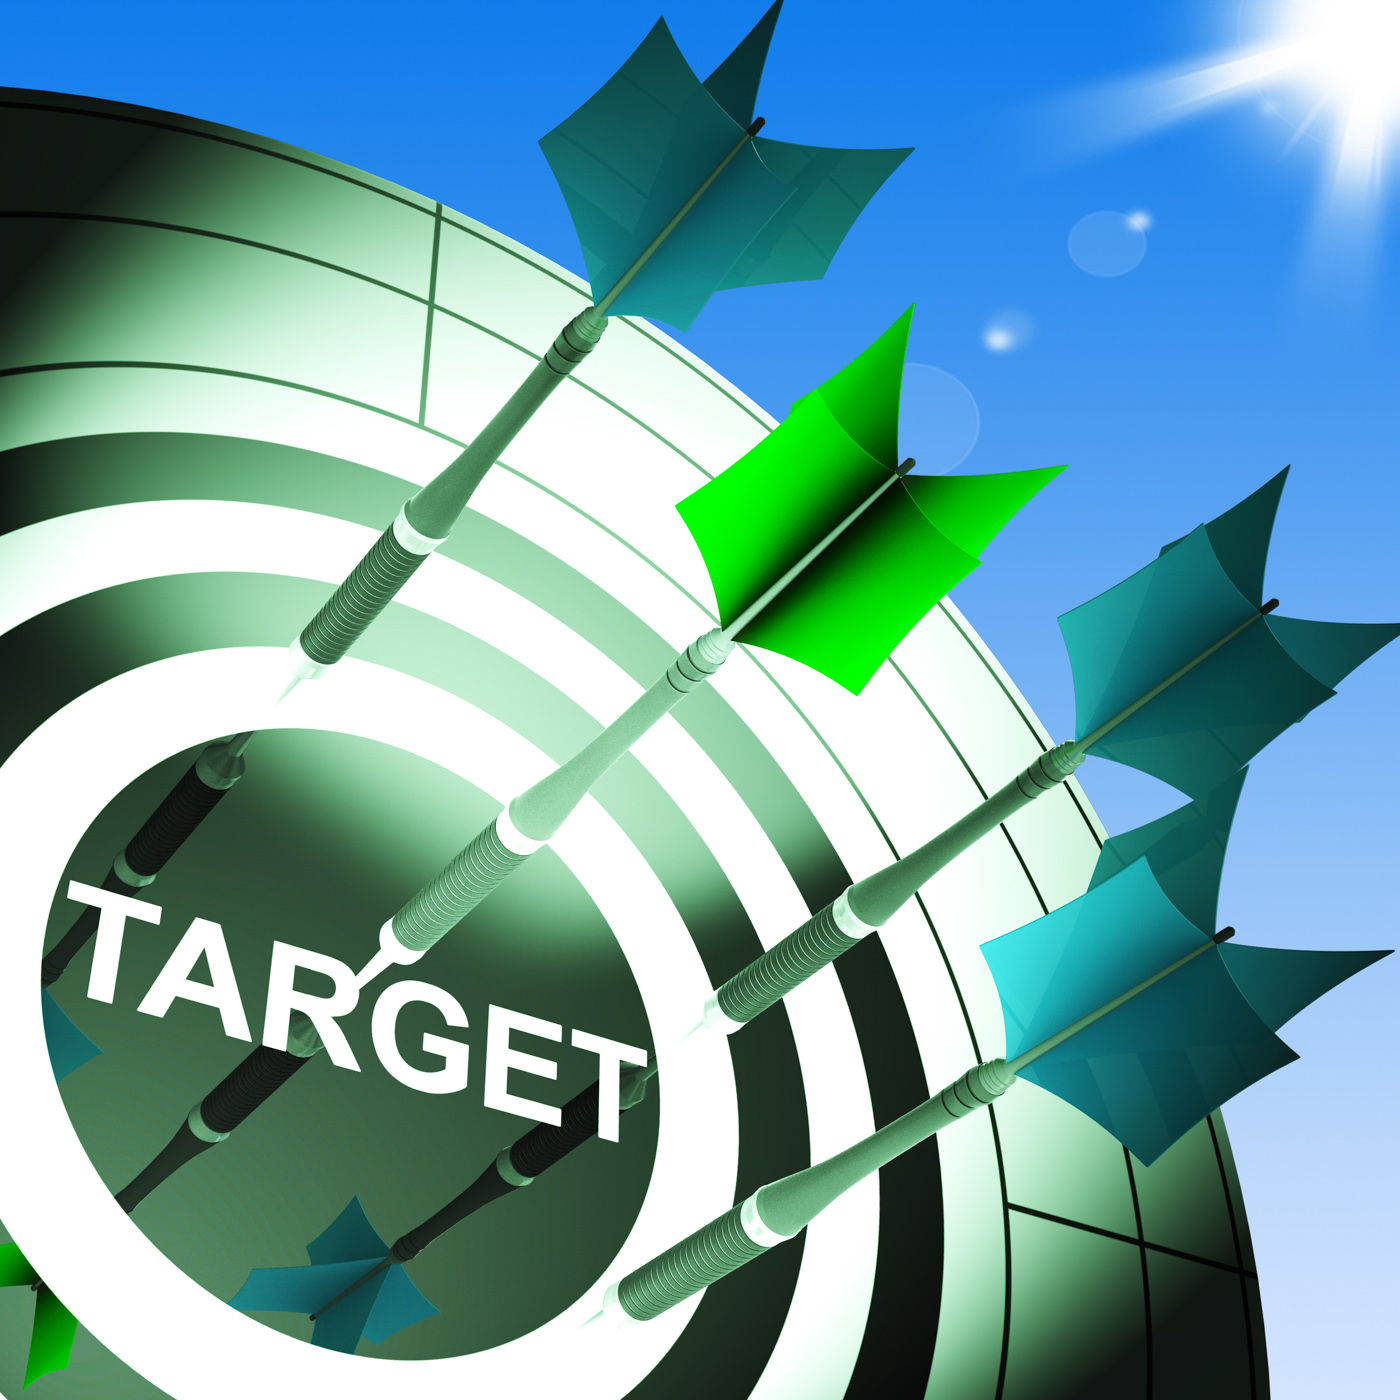 Target On Dartboard Showing Successful Shooting, Objective, Targeting, Target, Successful, HQ Photo